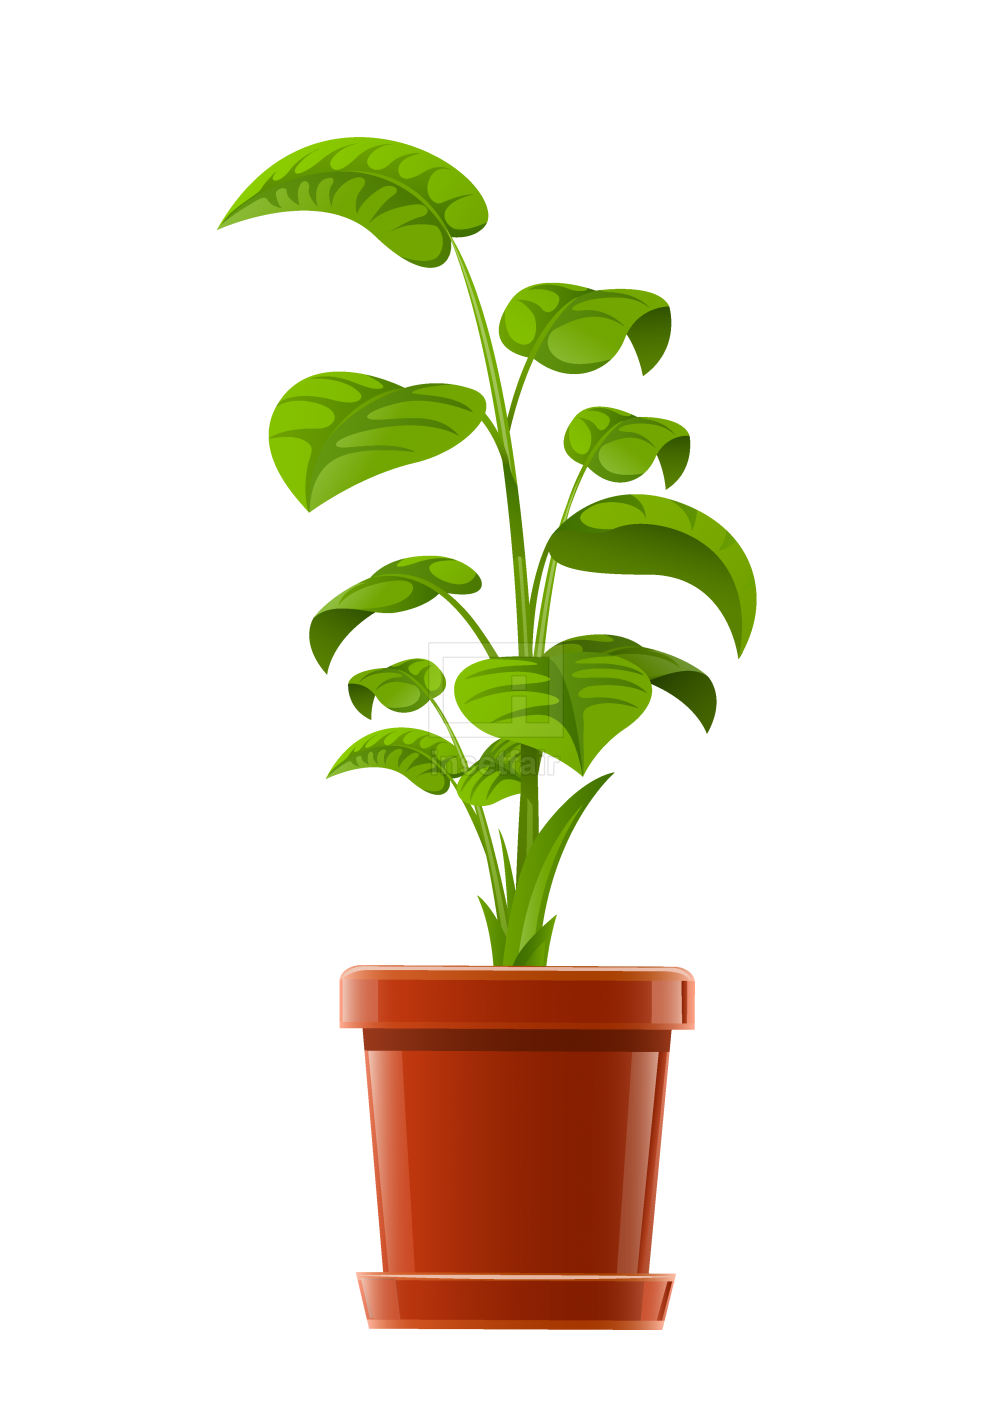 House garden plant in flower pot vector watermark free image